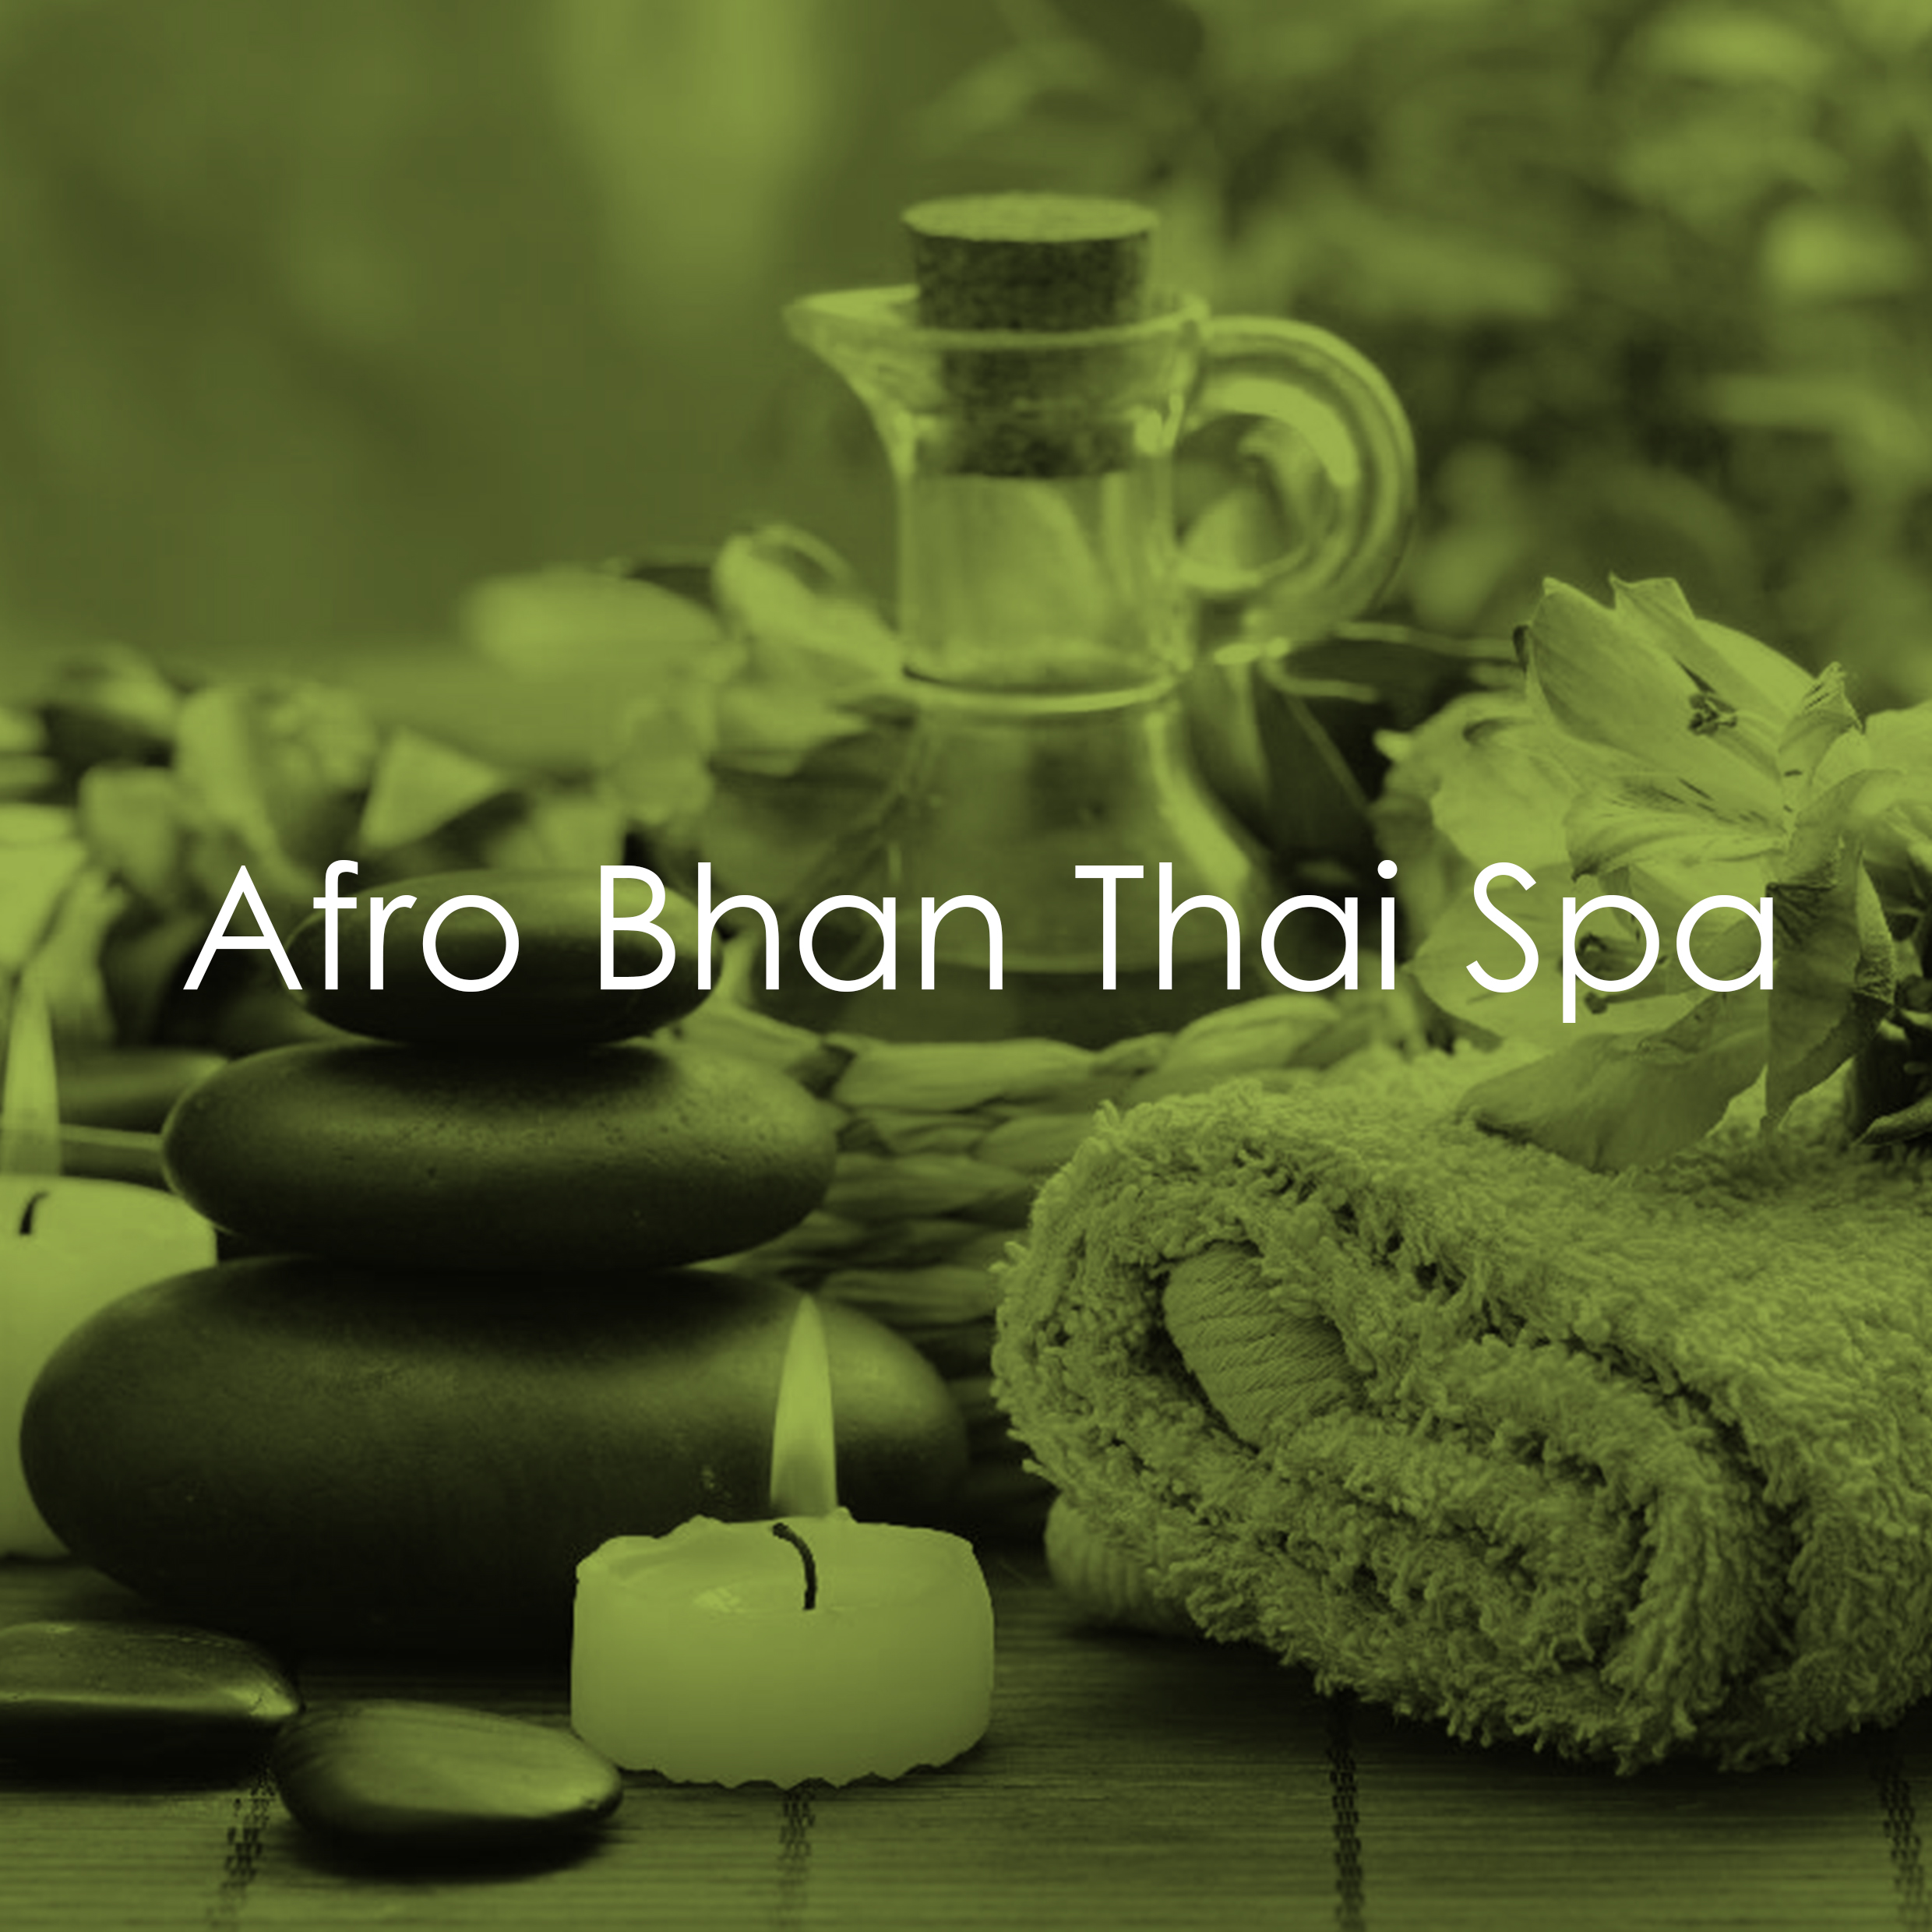 AFRO BHAN THAI SPA - VIDEO PRODUCTION